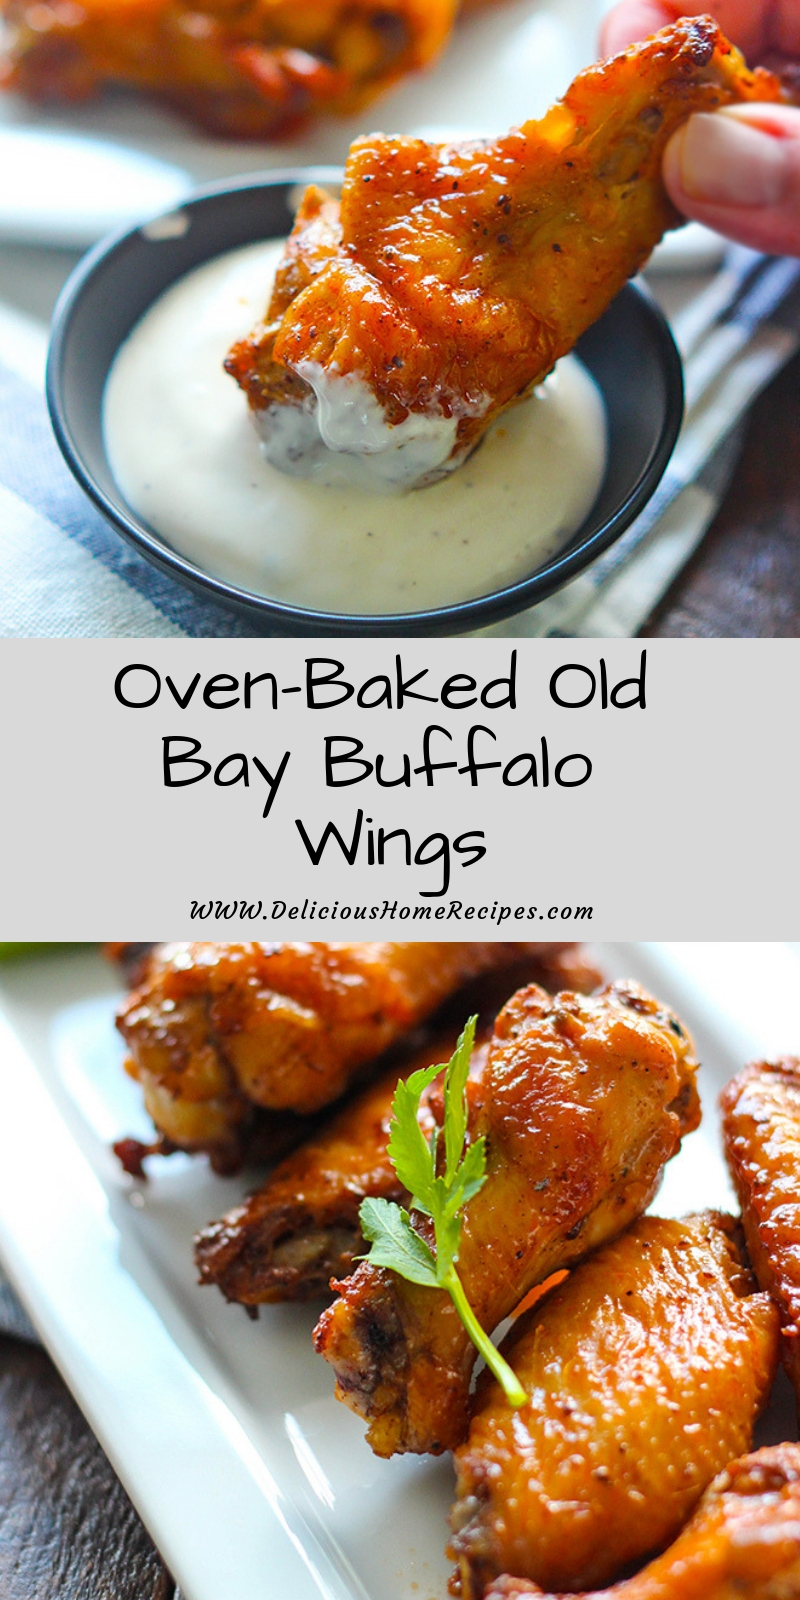 Oven-Baked Old Bay Buffalo Wings